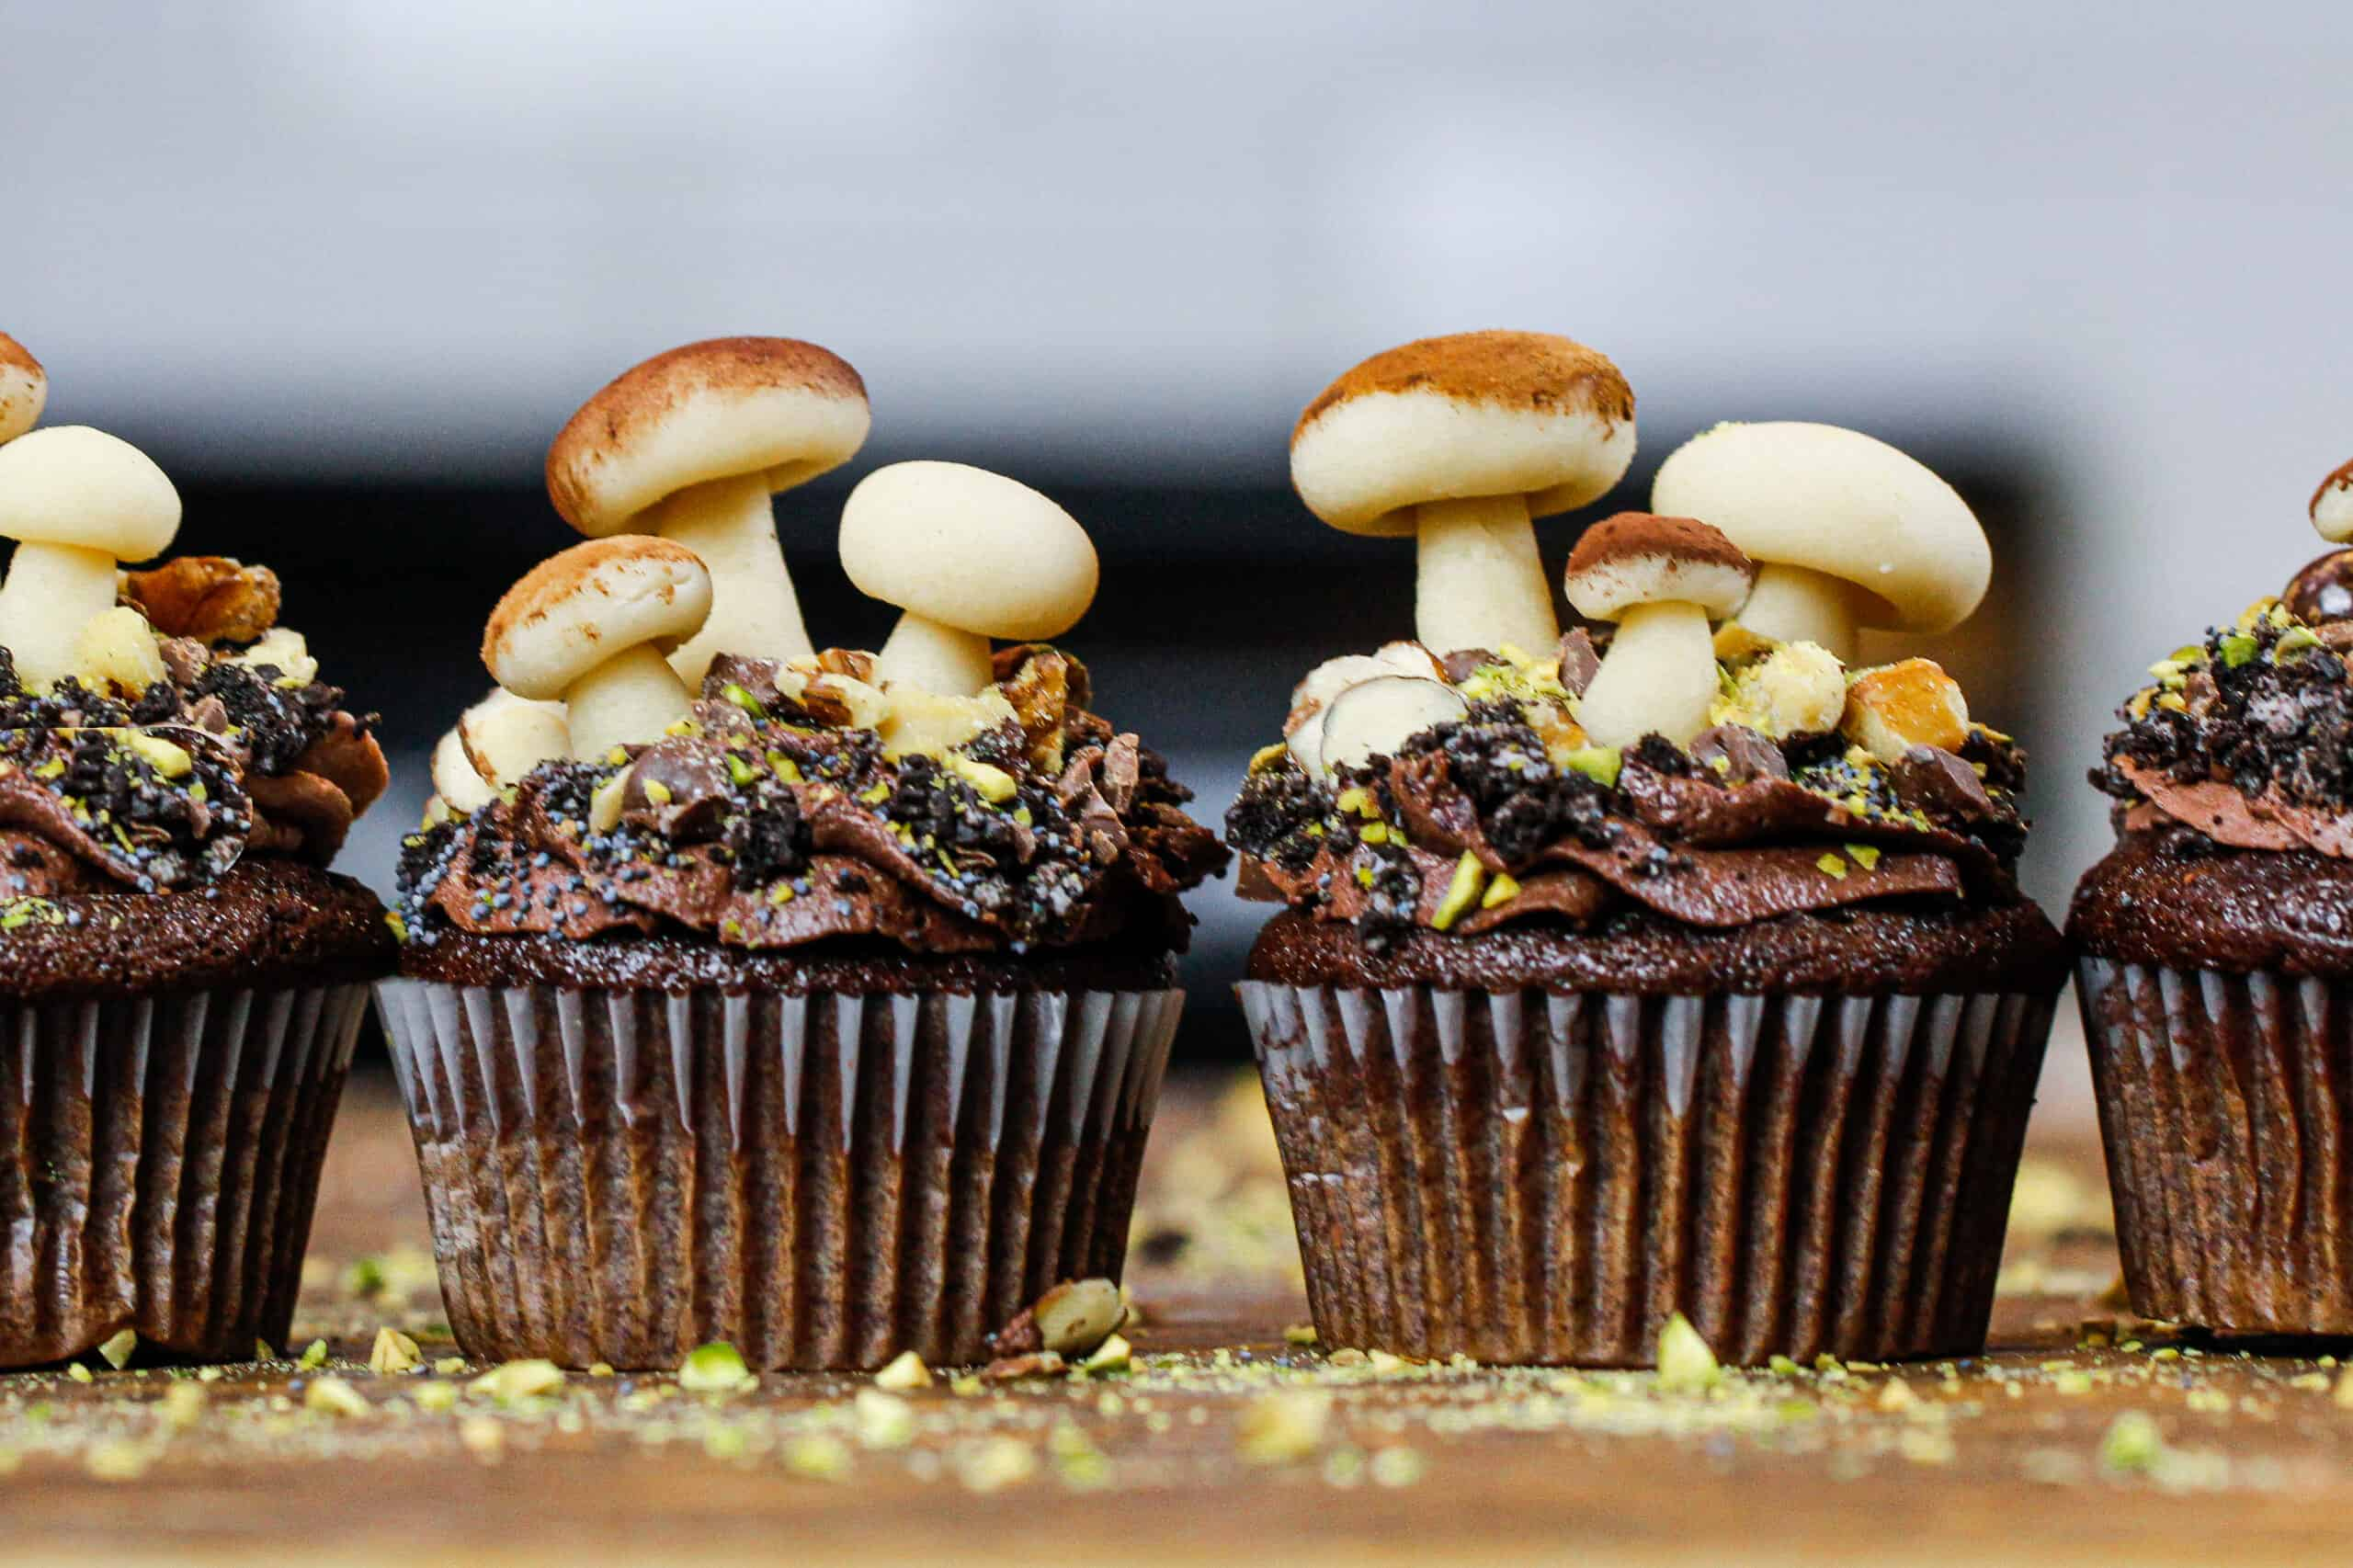 image of mushroom cupcakes made with chocolate buttercream and edible marzipan mushrooms